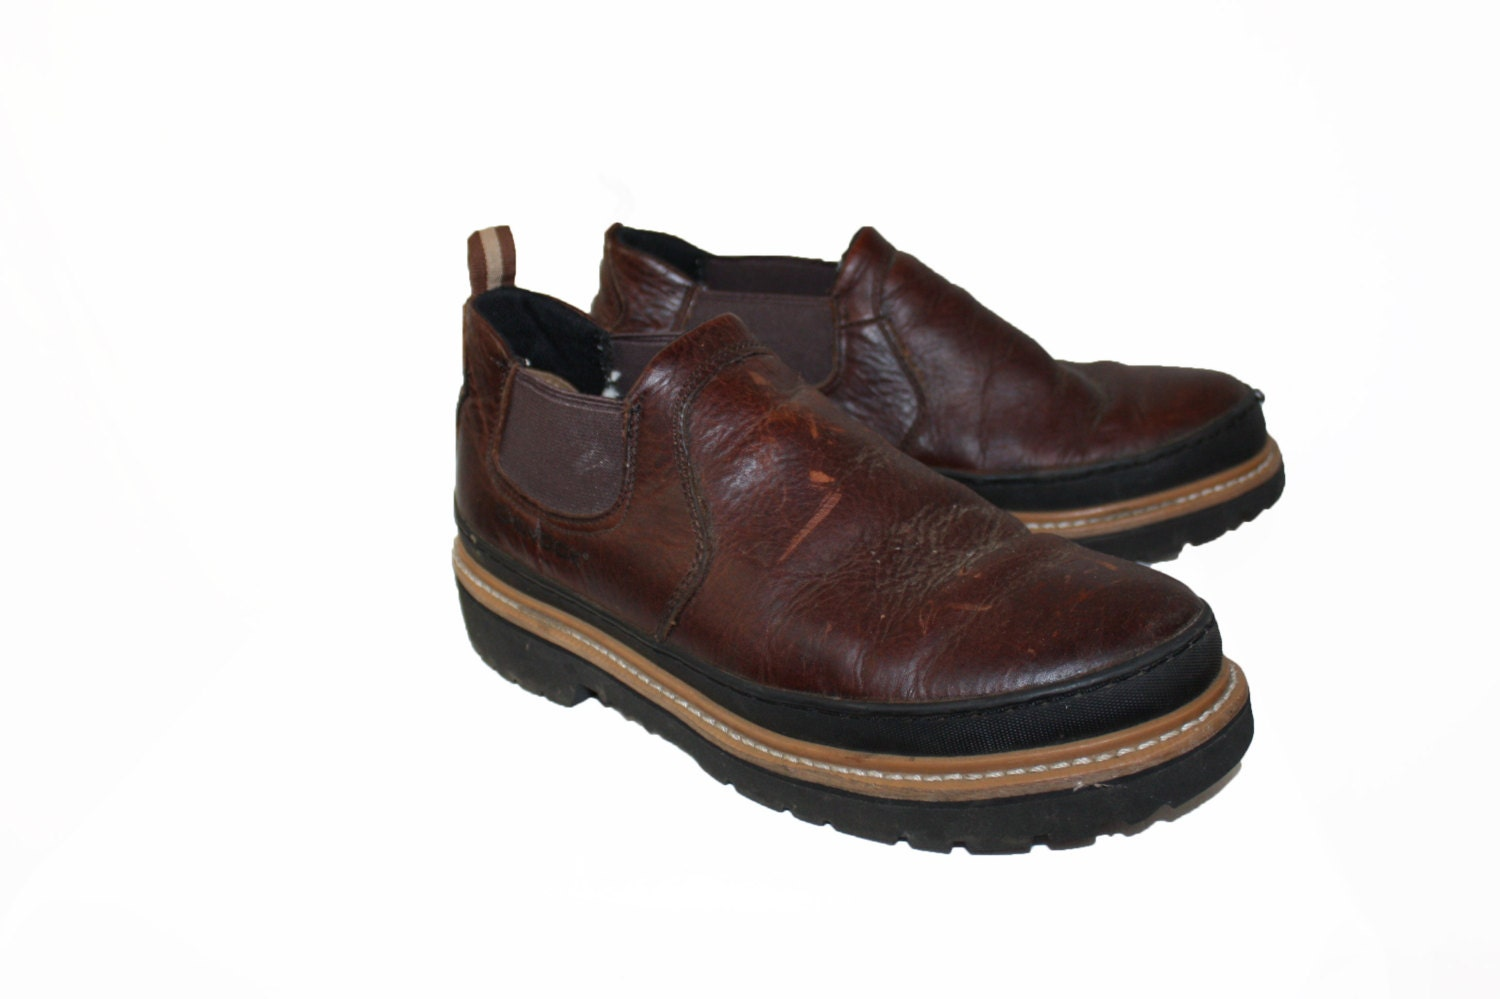 work boots vintage mens leather boots shoes leather chinook